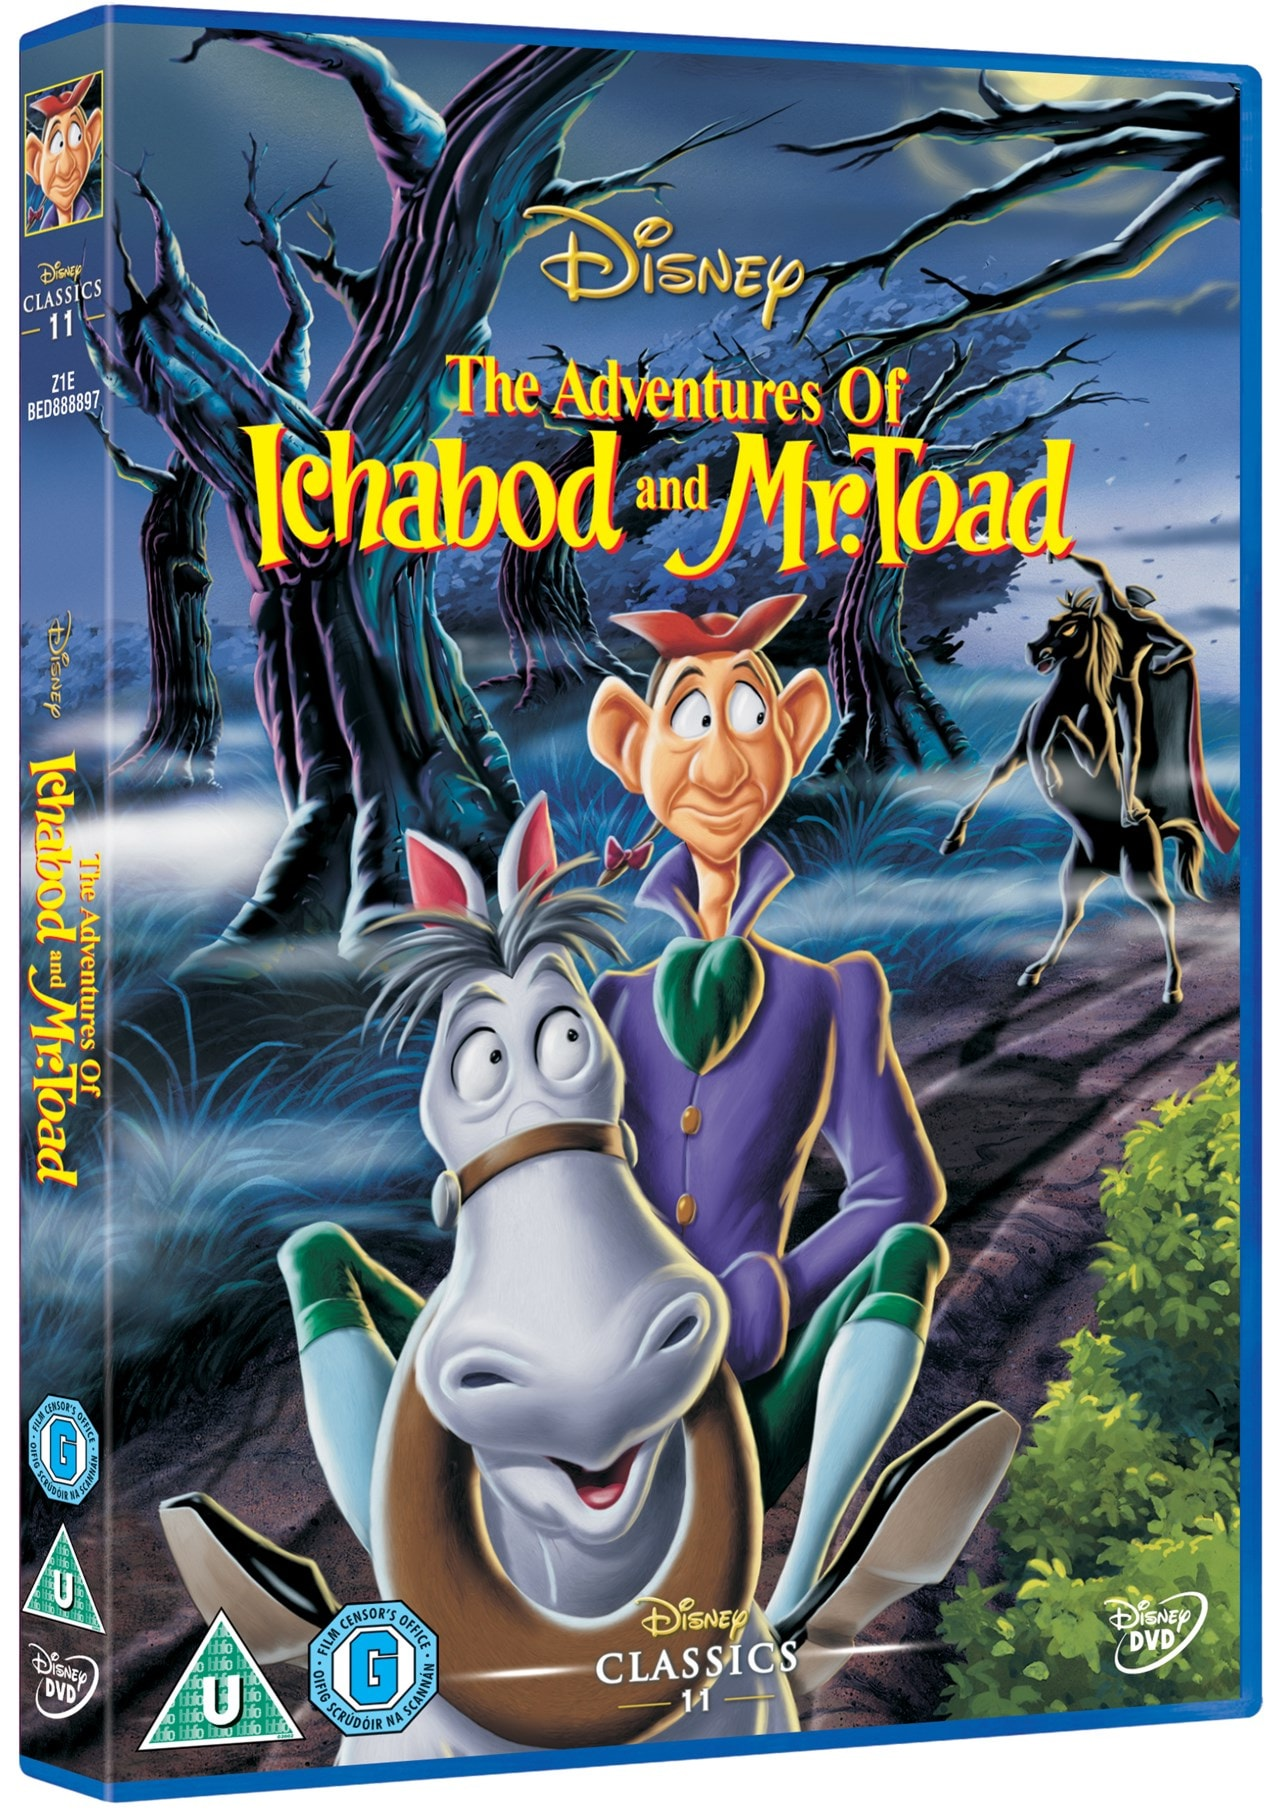 The Adventures of Ichabod and Mr Toad - 4